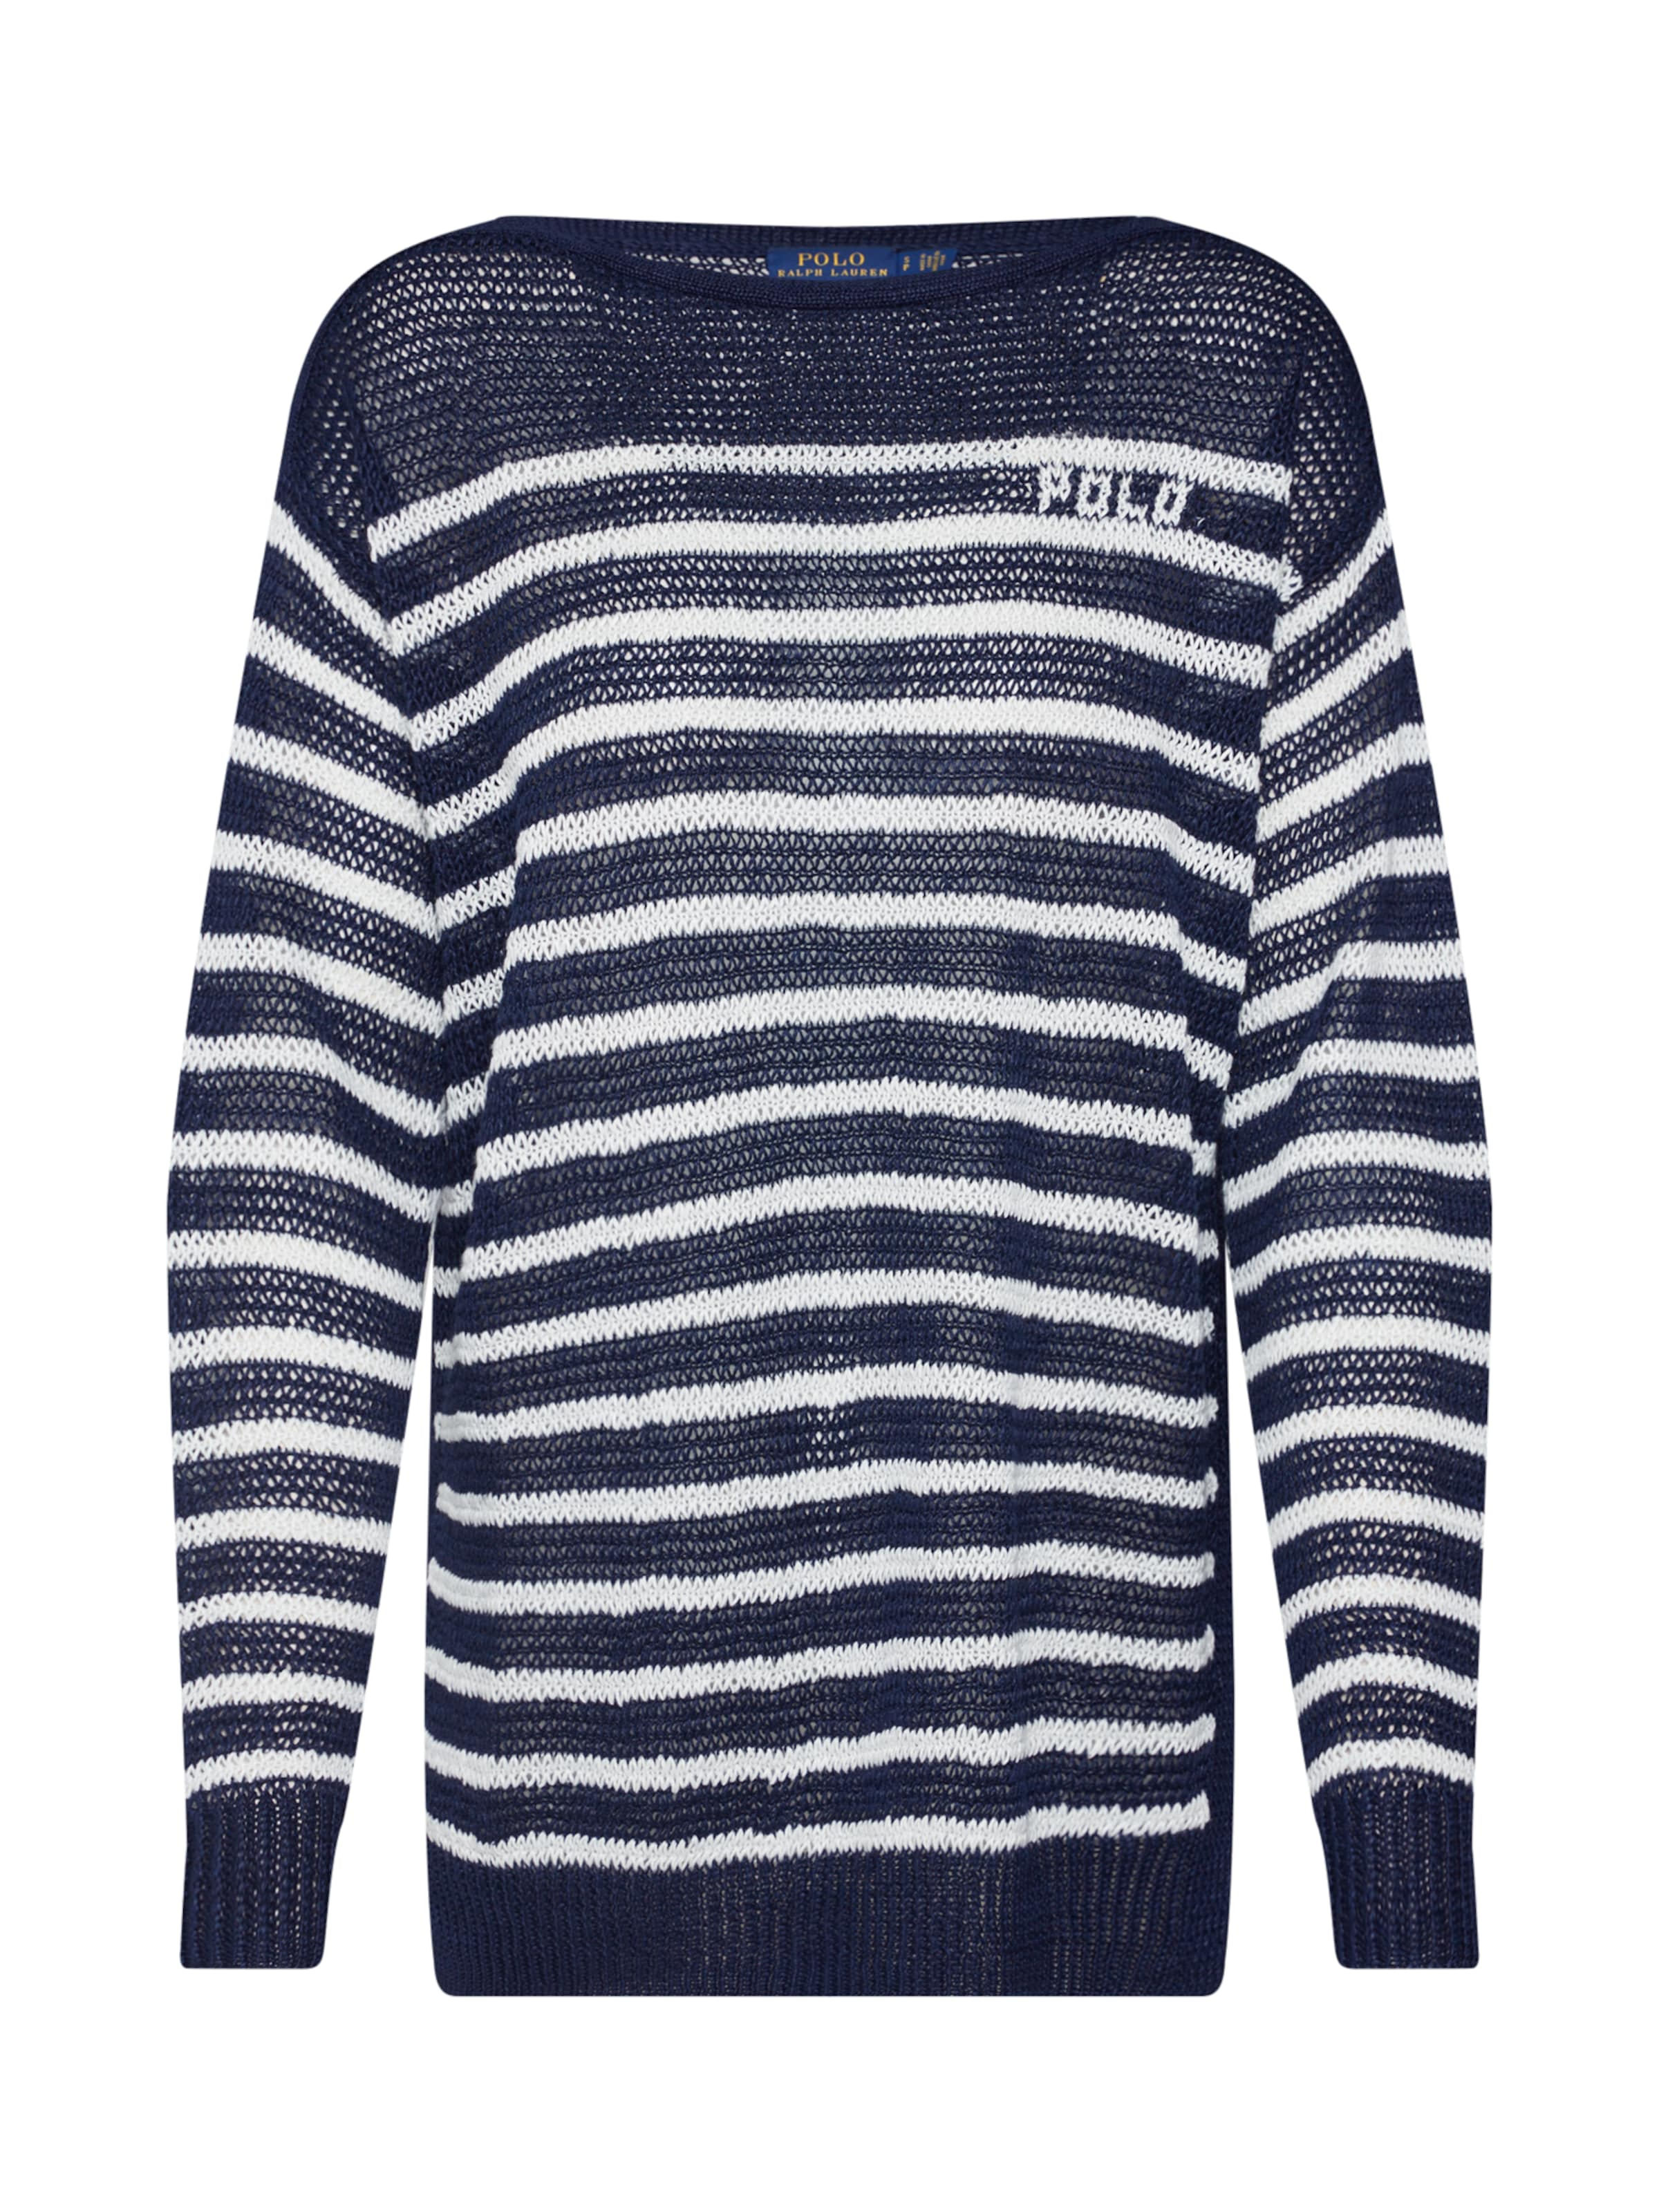 Ralph Polo LaurenPull In over Bleu MarineBlanc XkZiPOuT